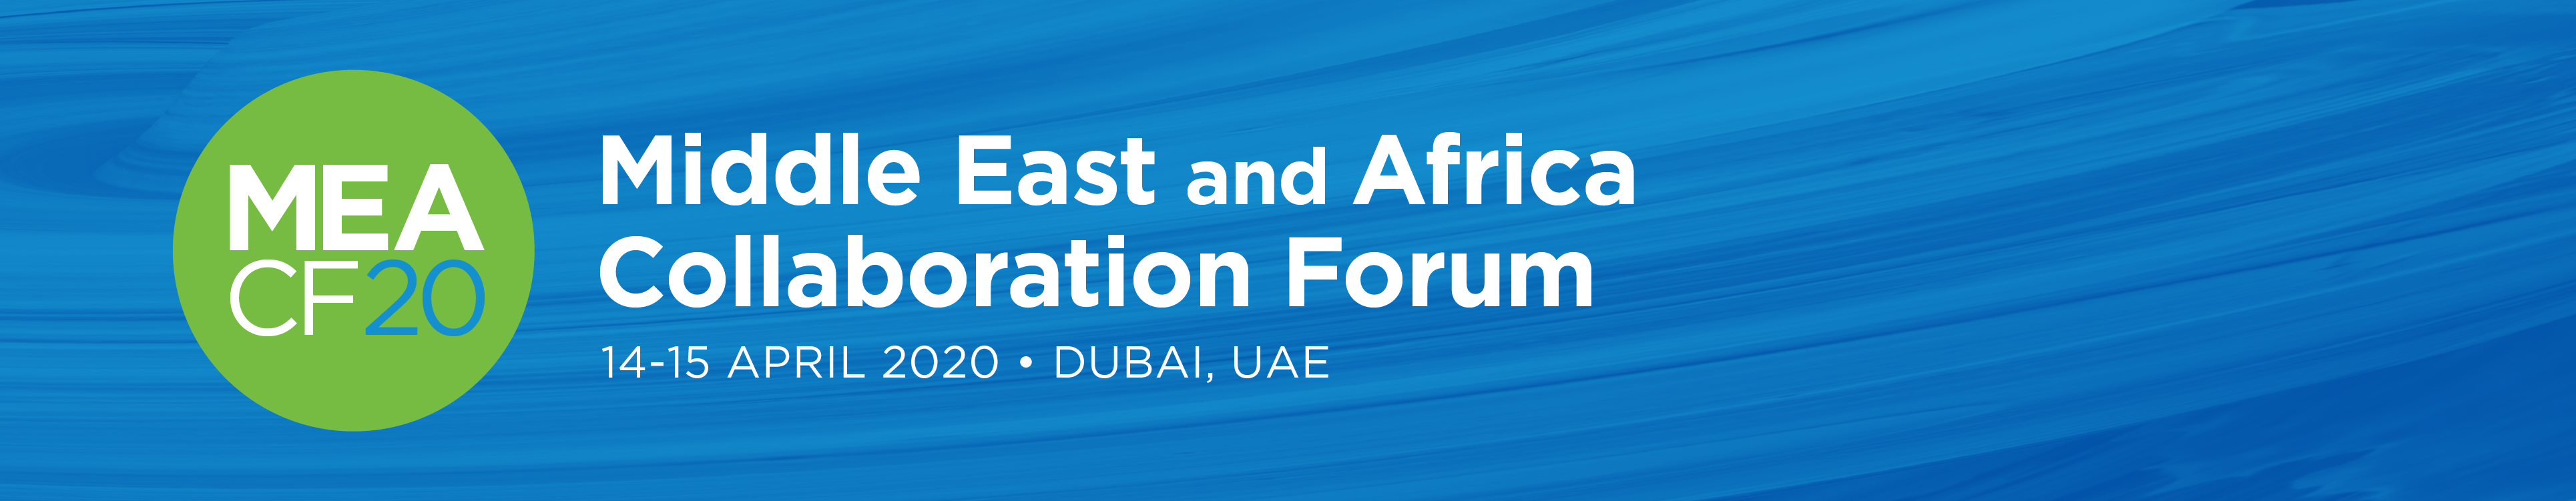 Middle East & Africa Collaboration Forum 2020